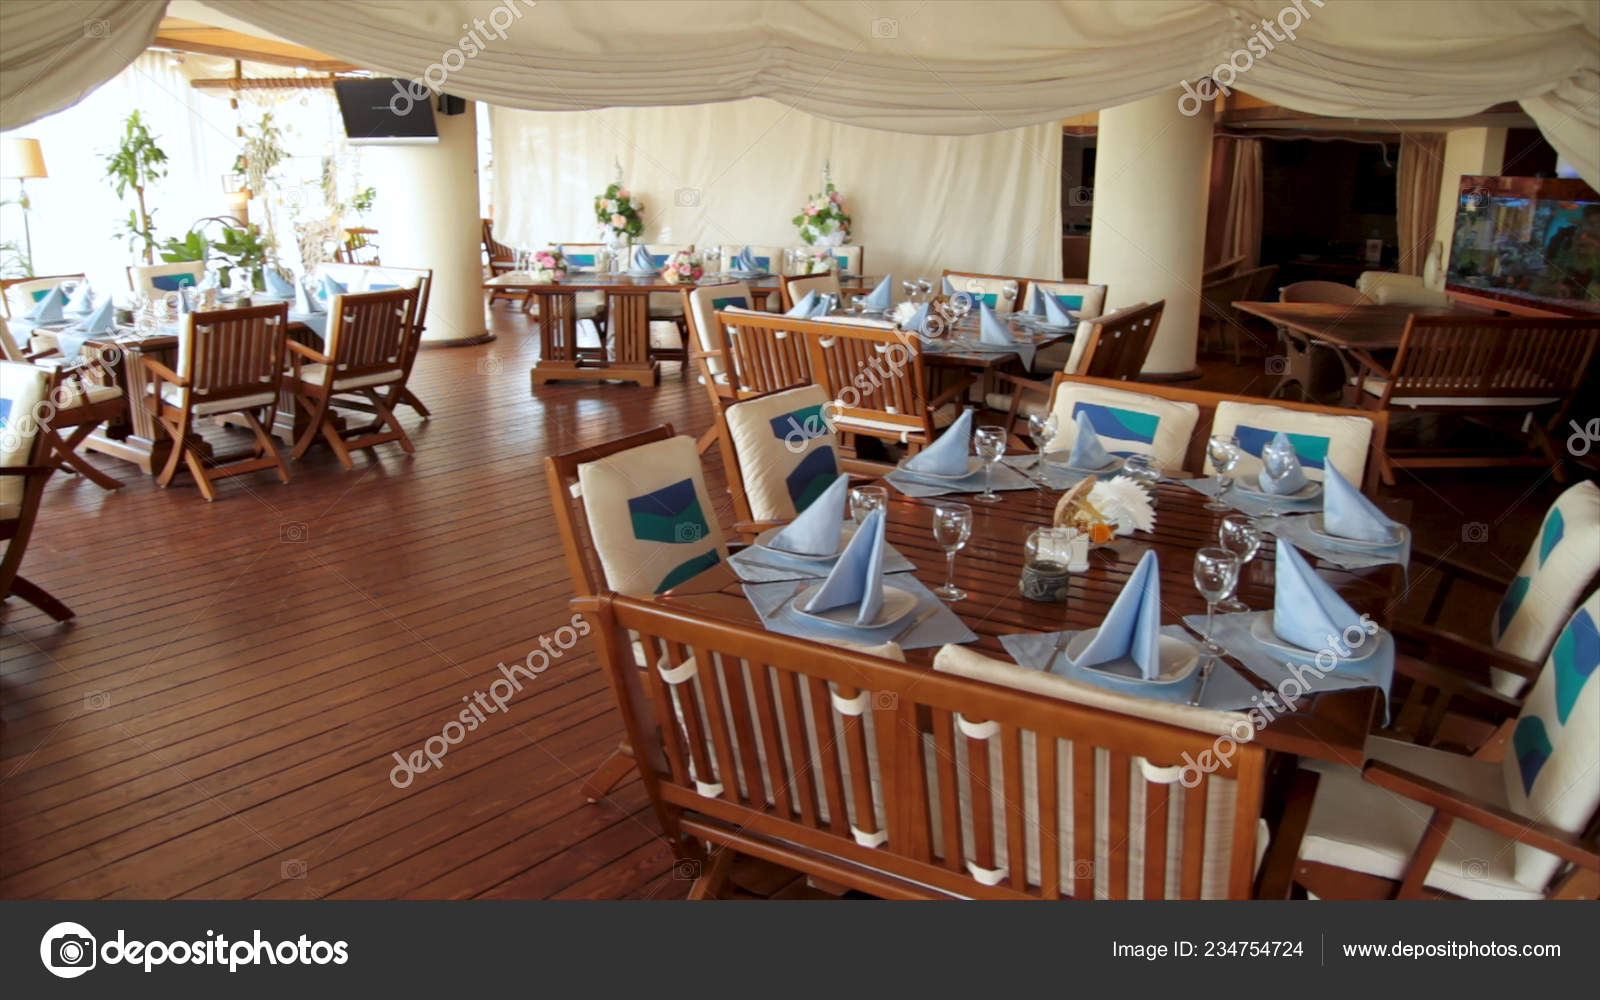 New And Clean Luxury Restaurant In European Style Scene Typical Summer Outdoor Cafe Tables And Chairs